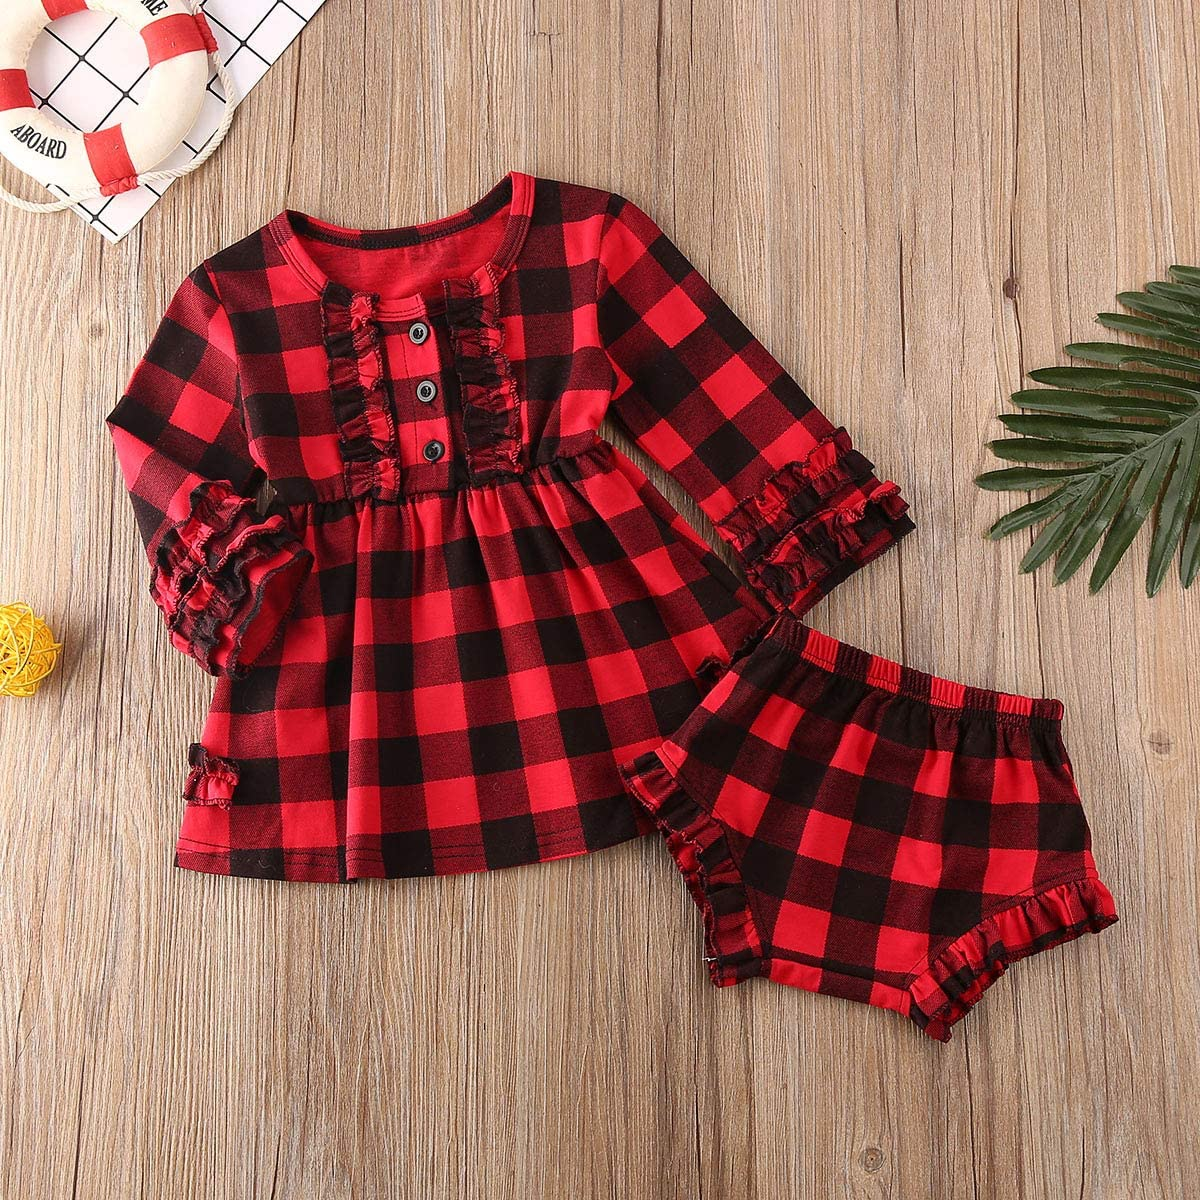 OPITIO Toddler Baby Girl Christmas Plaid Dress Long Sleeve Button Down Flannel Shirt Dress with Belt Fall Clothes